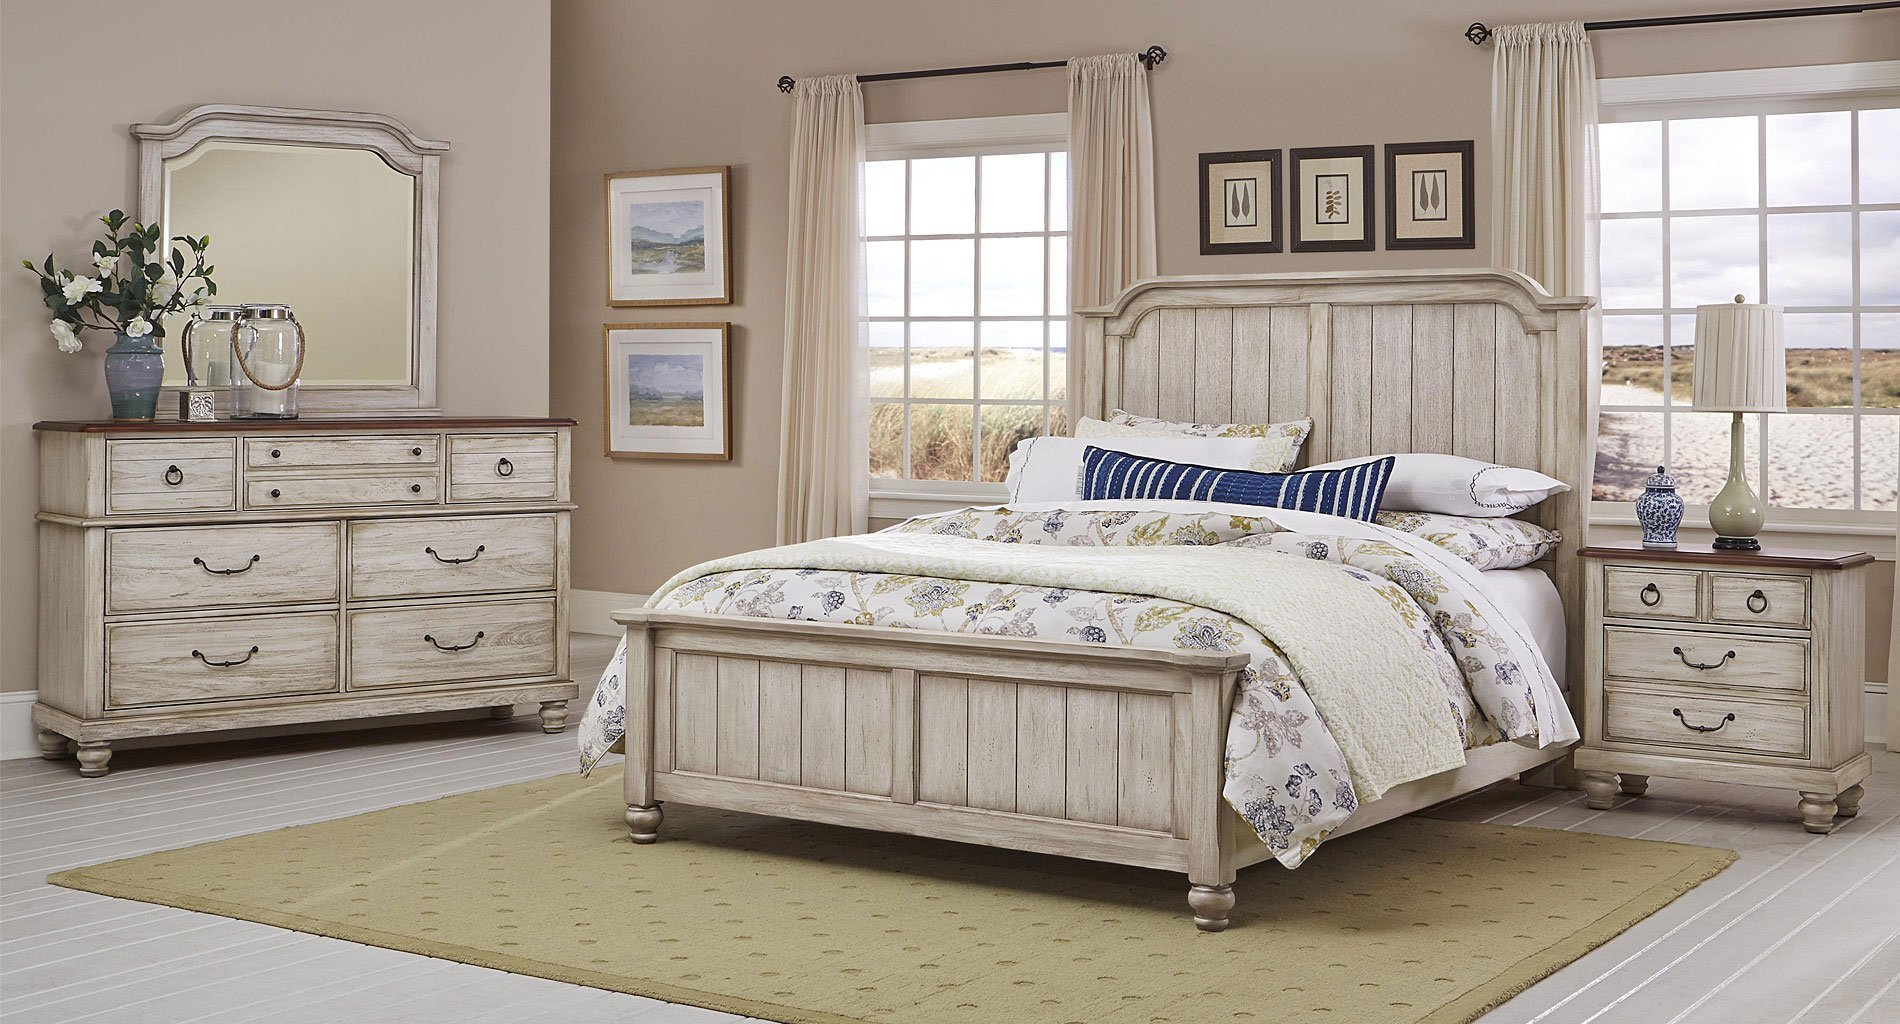 3 Pice Bedroom Set New Distressed F White Bedroom Furniture